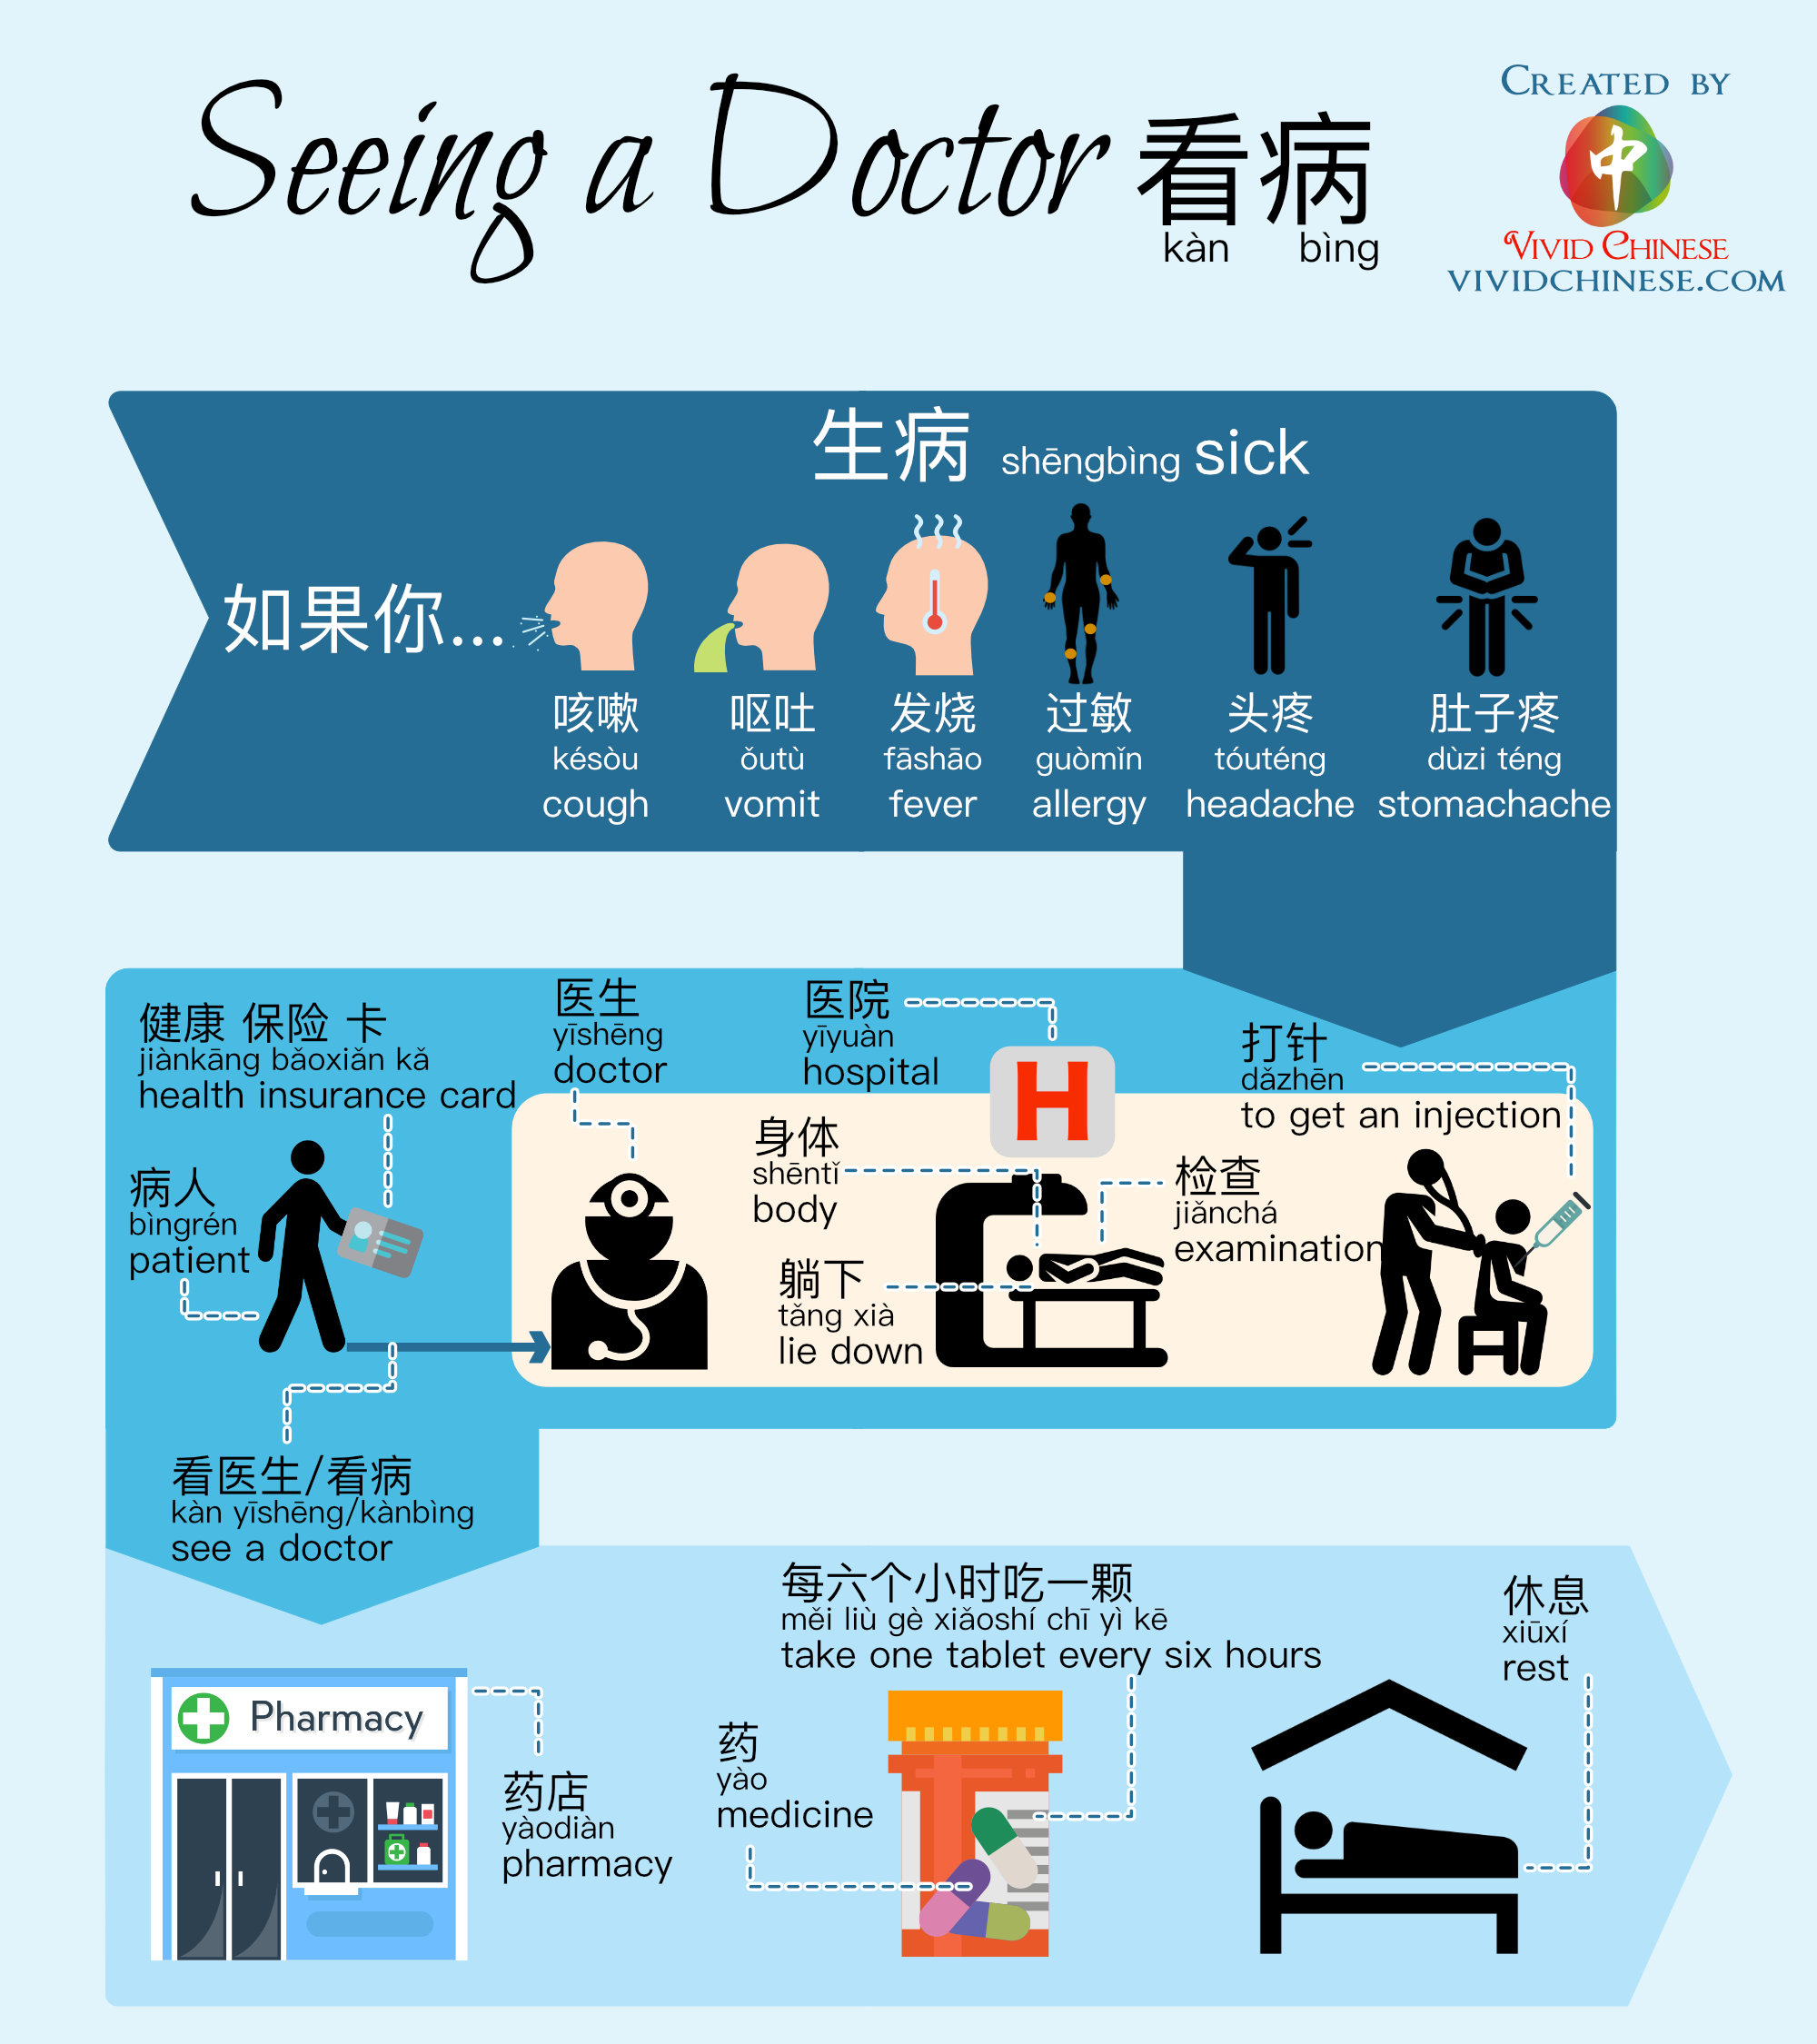 Seeing a doctor Simplified Chinese Version Infographic